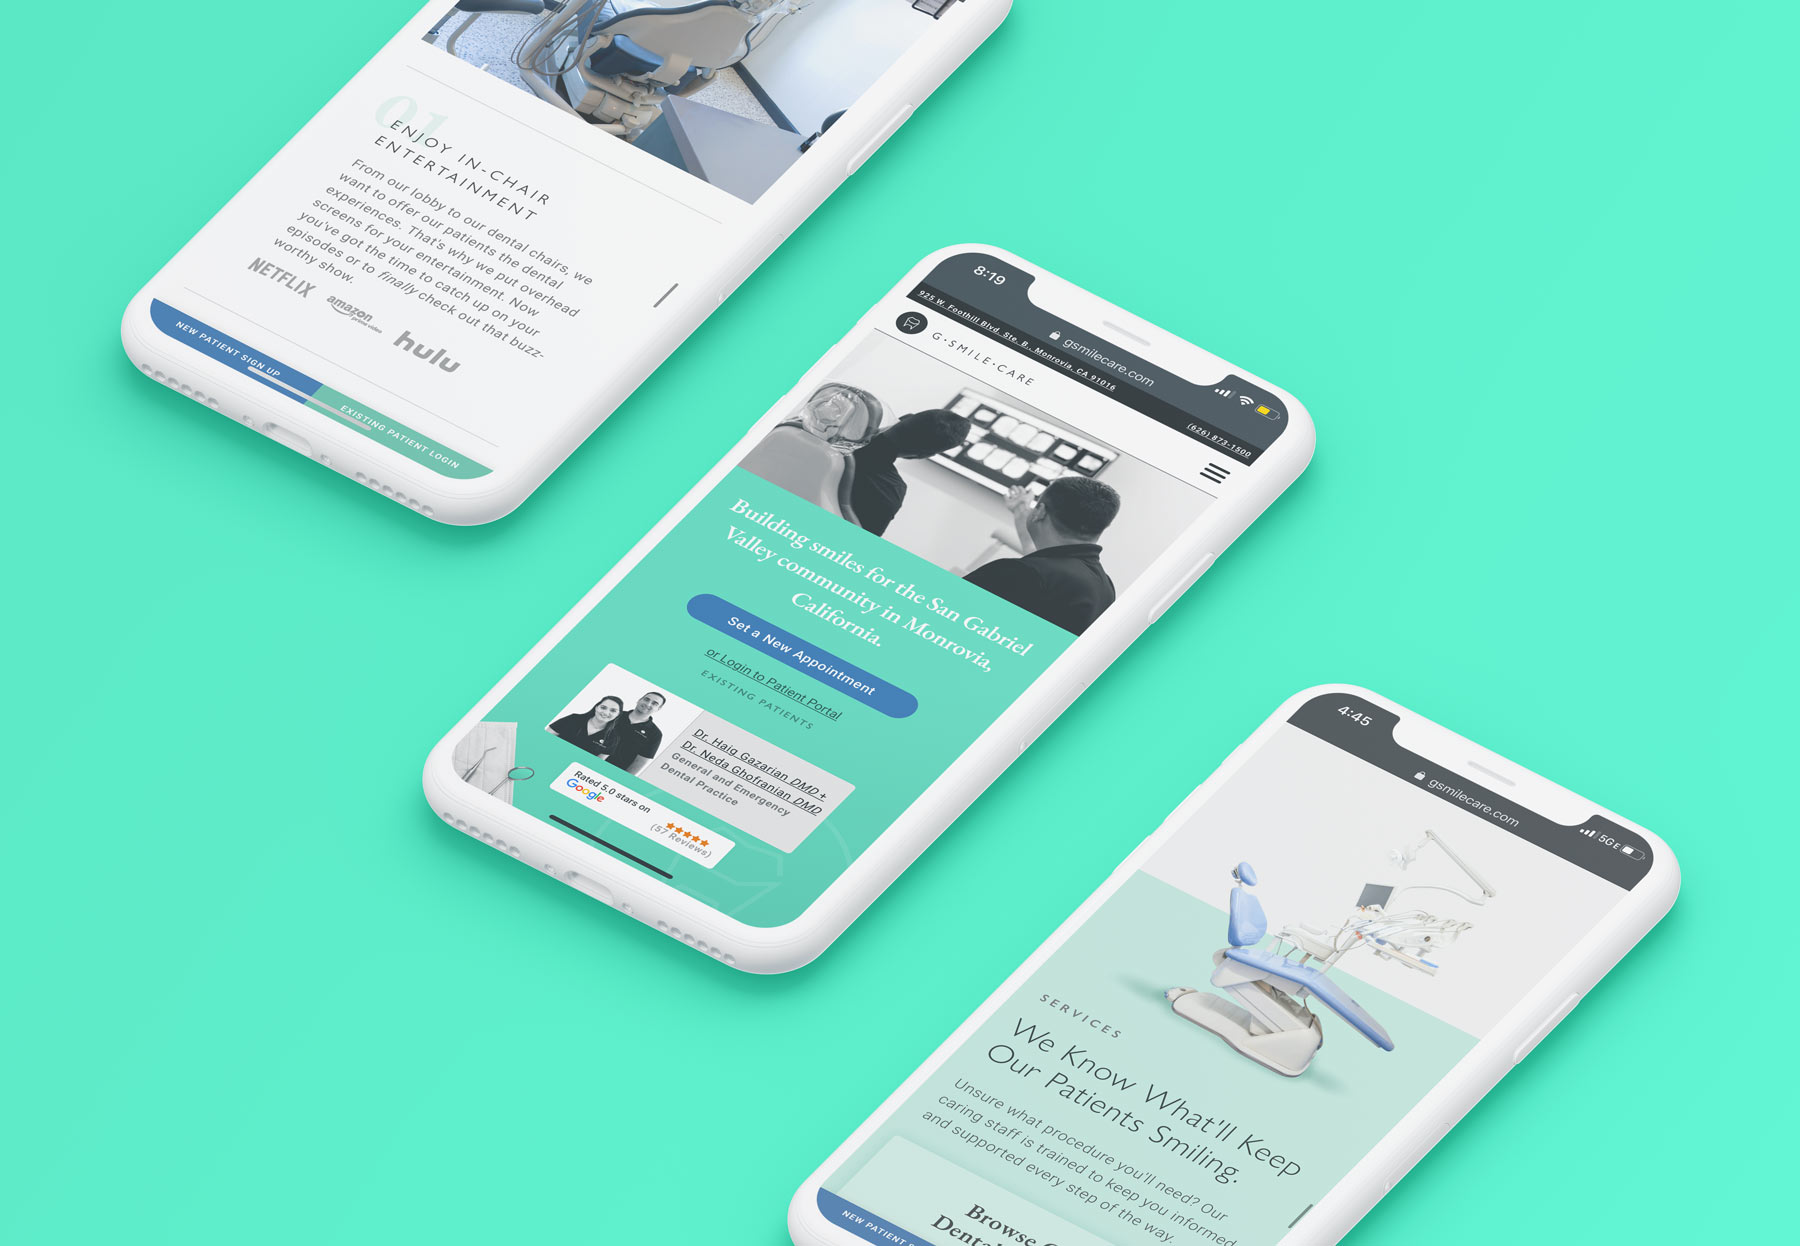 G Smile Care Website Responsive on Phone